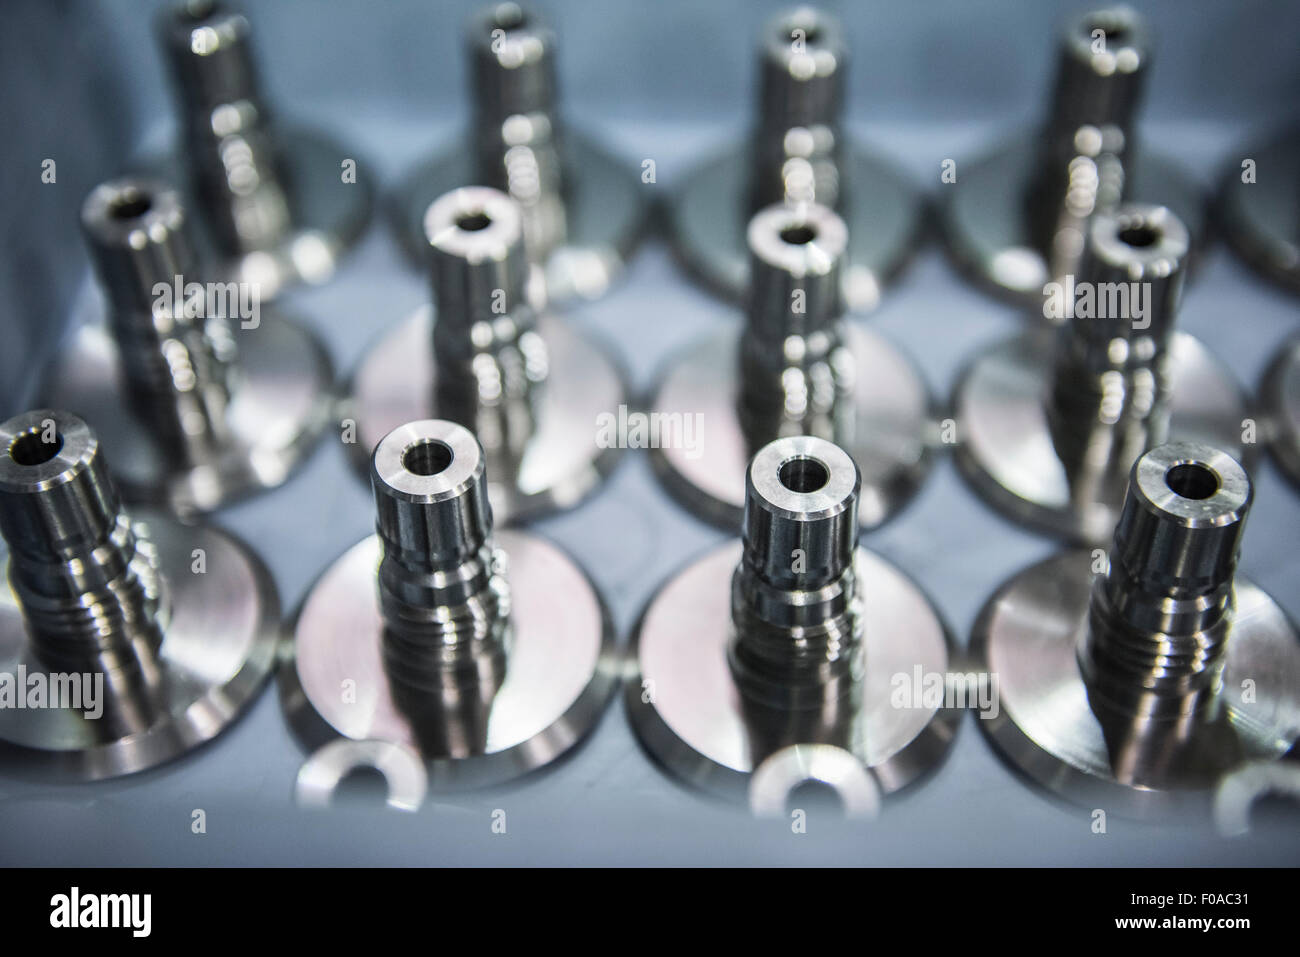 Close up view of engineered parts detail - Stock Image